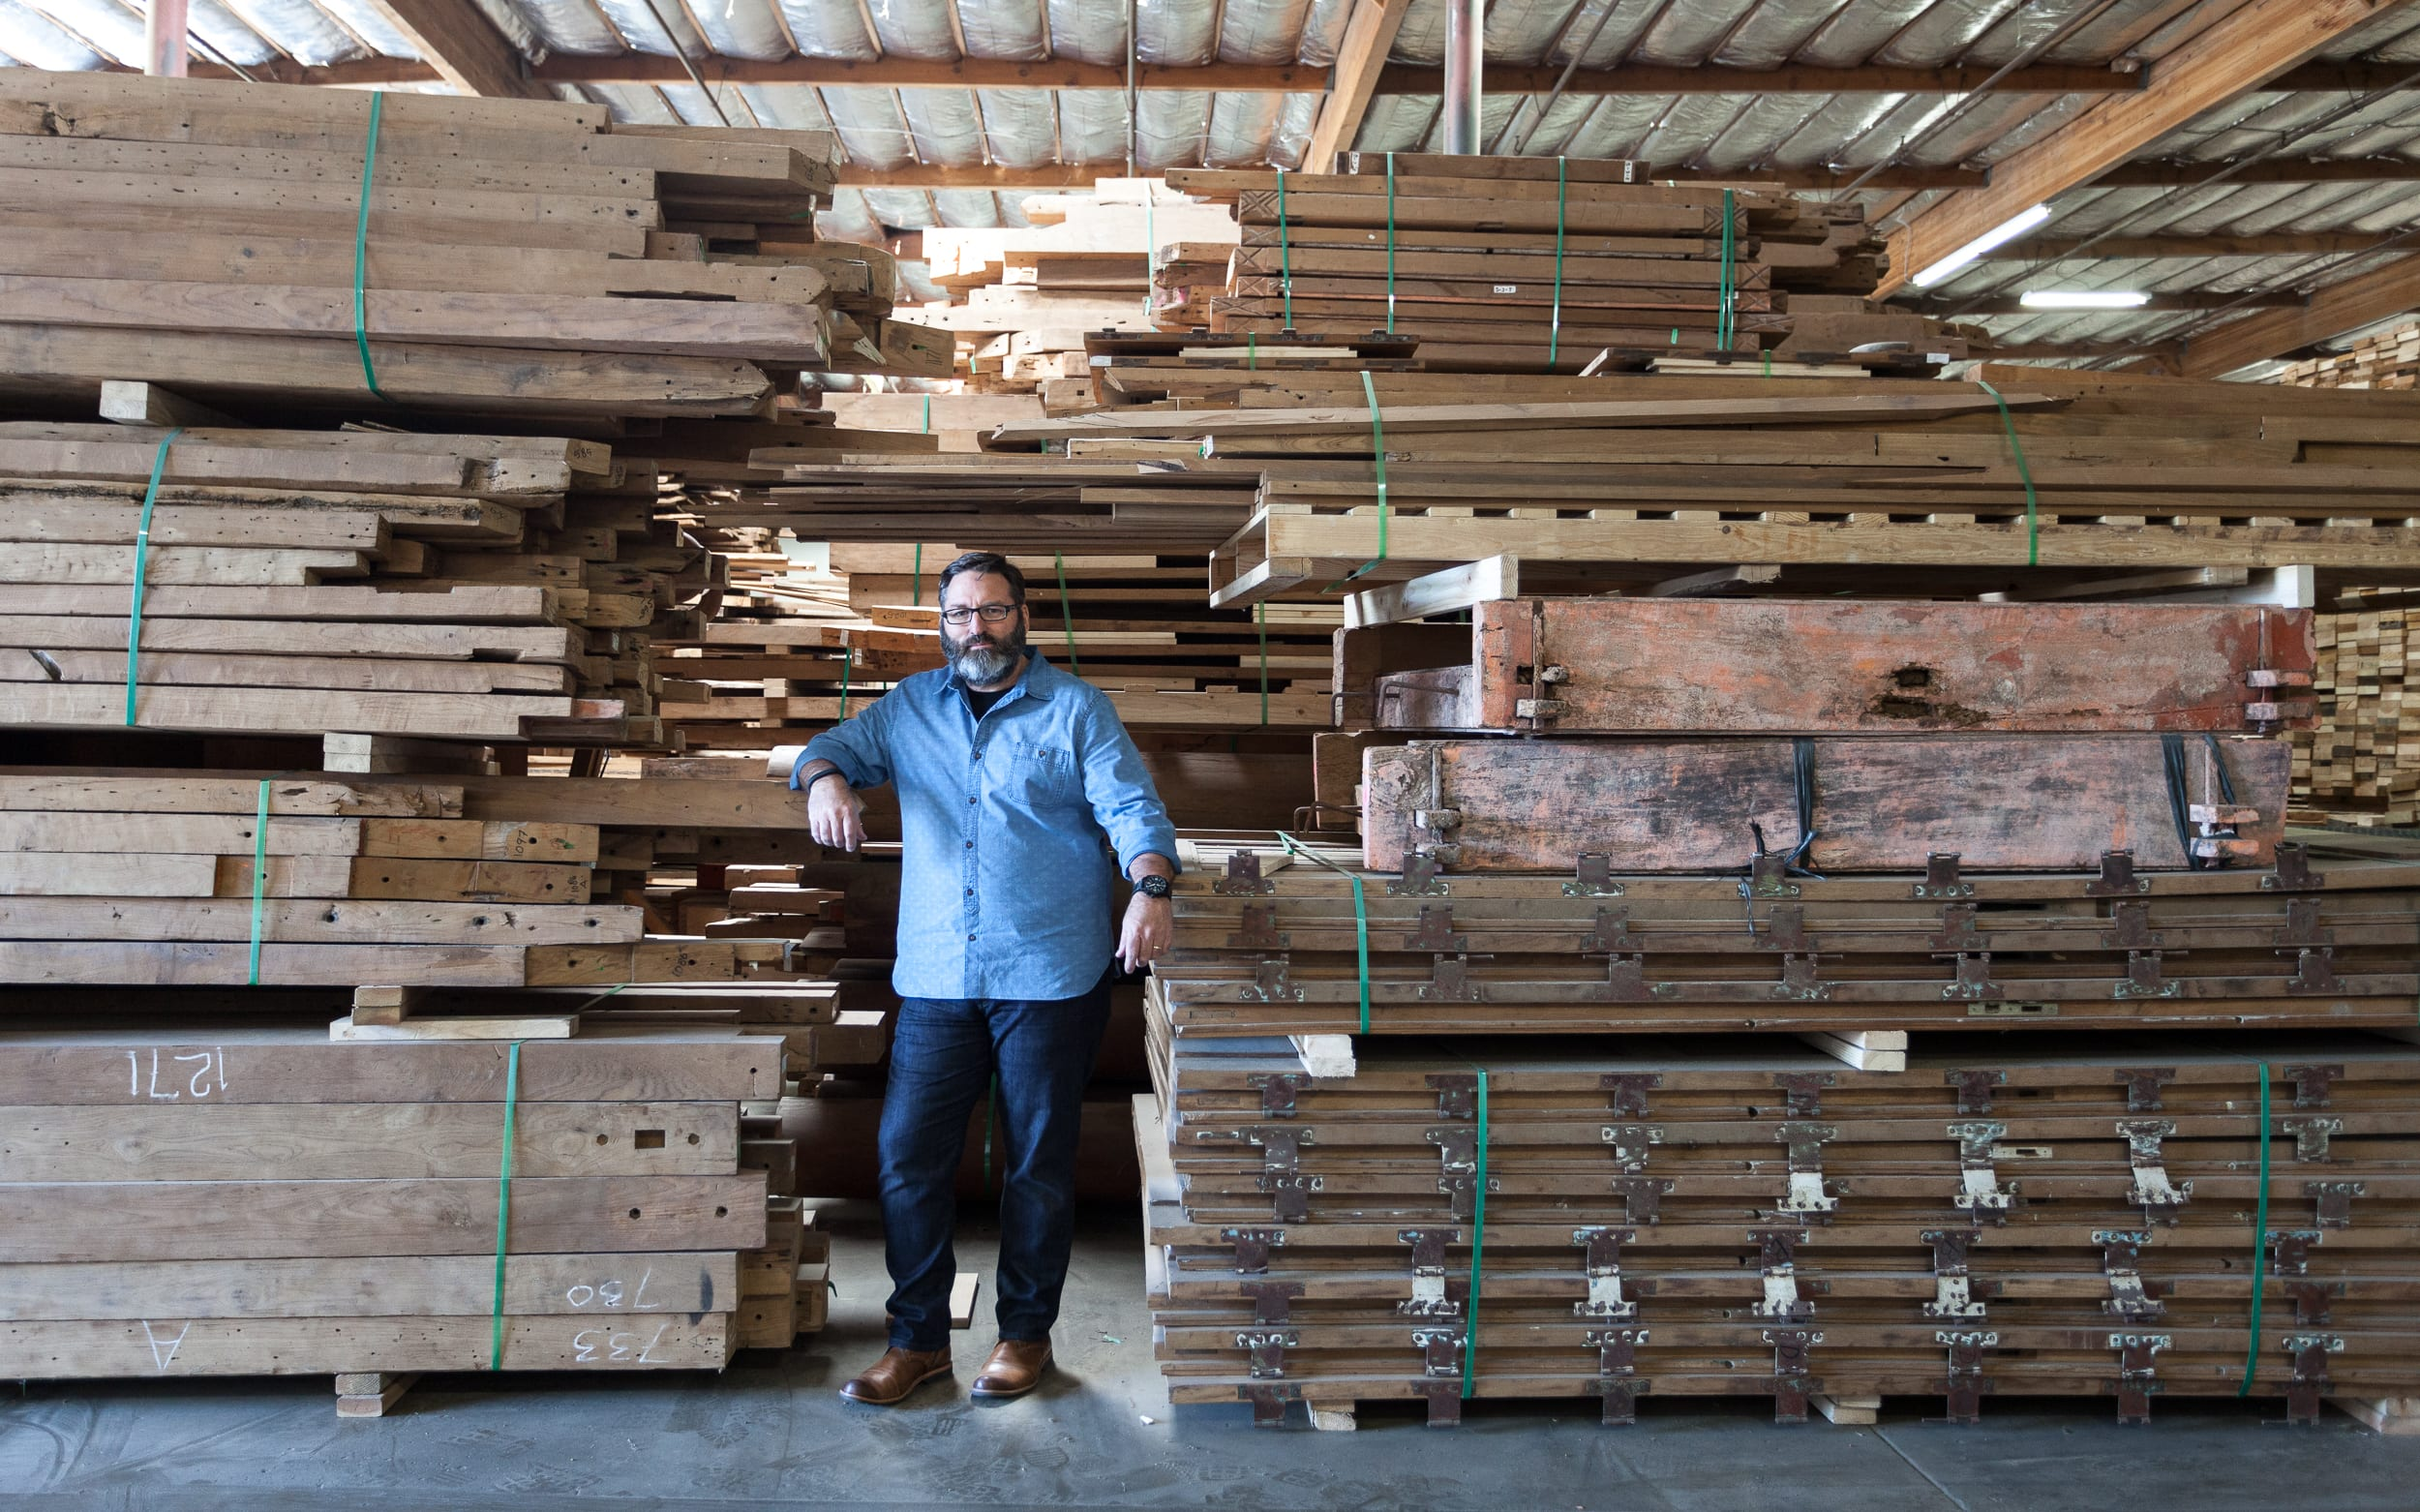 Large stacks of reclaimed wood boards and beams with master woodworker standing between.